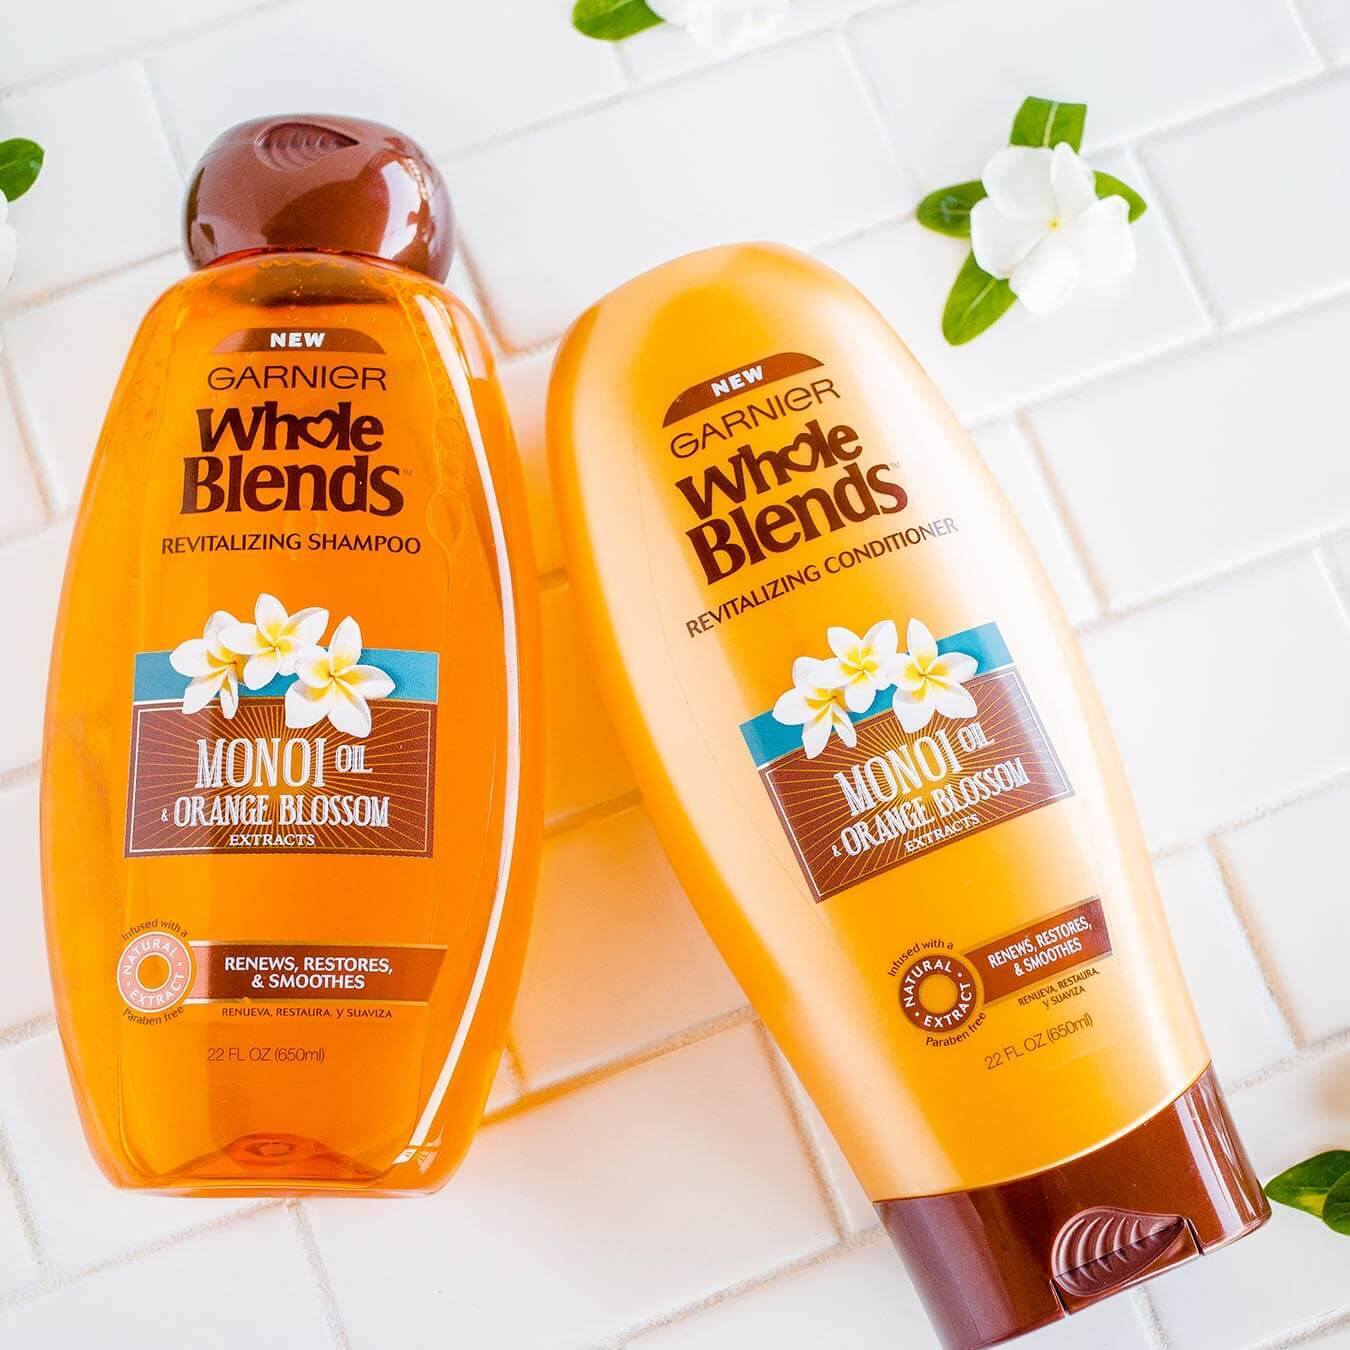 Whole Blends Monoi Oil Shampoo with Orange Blossom Extract and Monoi Oil Conditioner with Orange Blossom Extract on white tiles strewn with monoi blossoms.